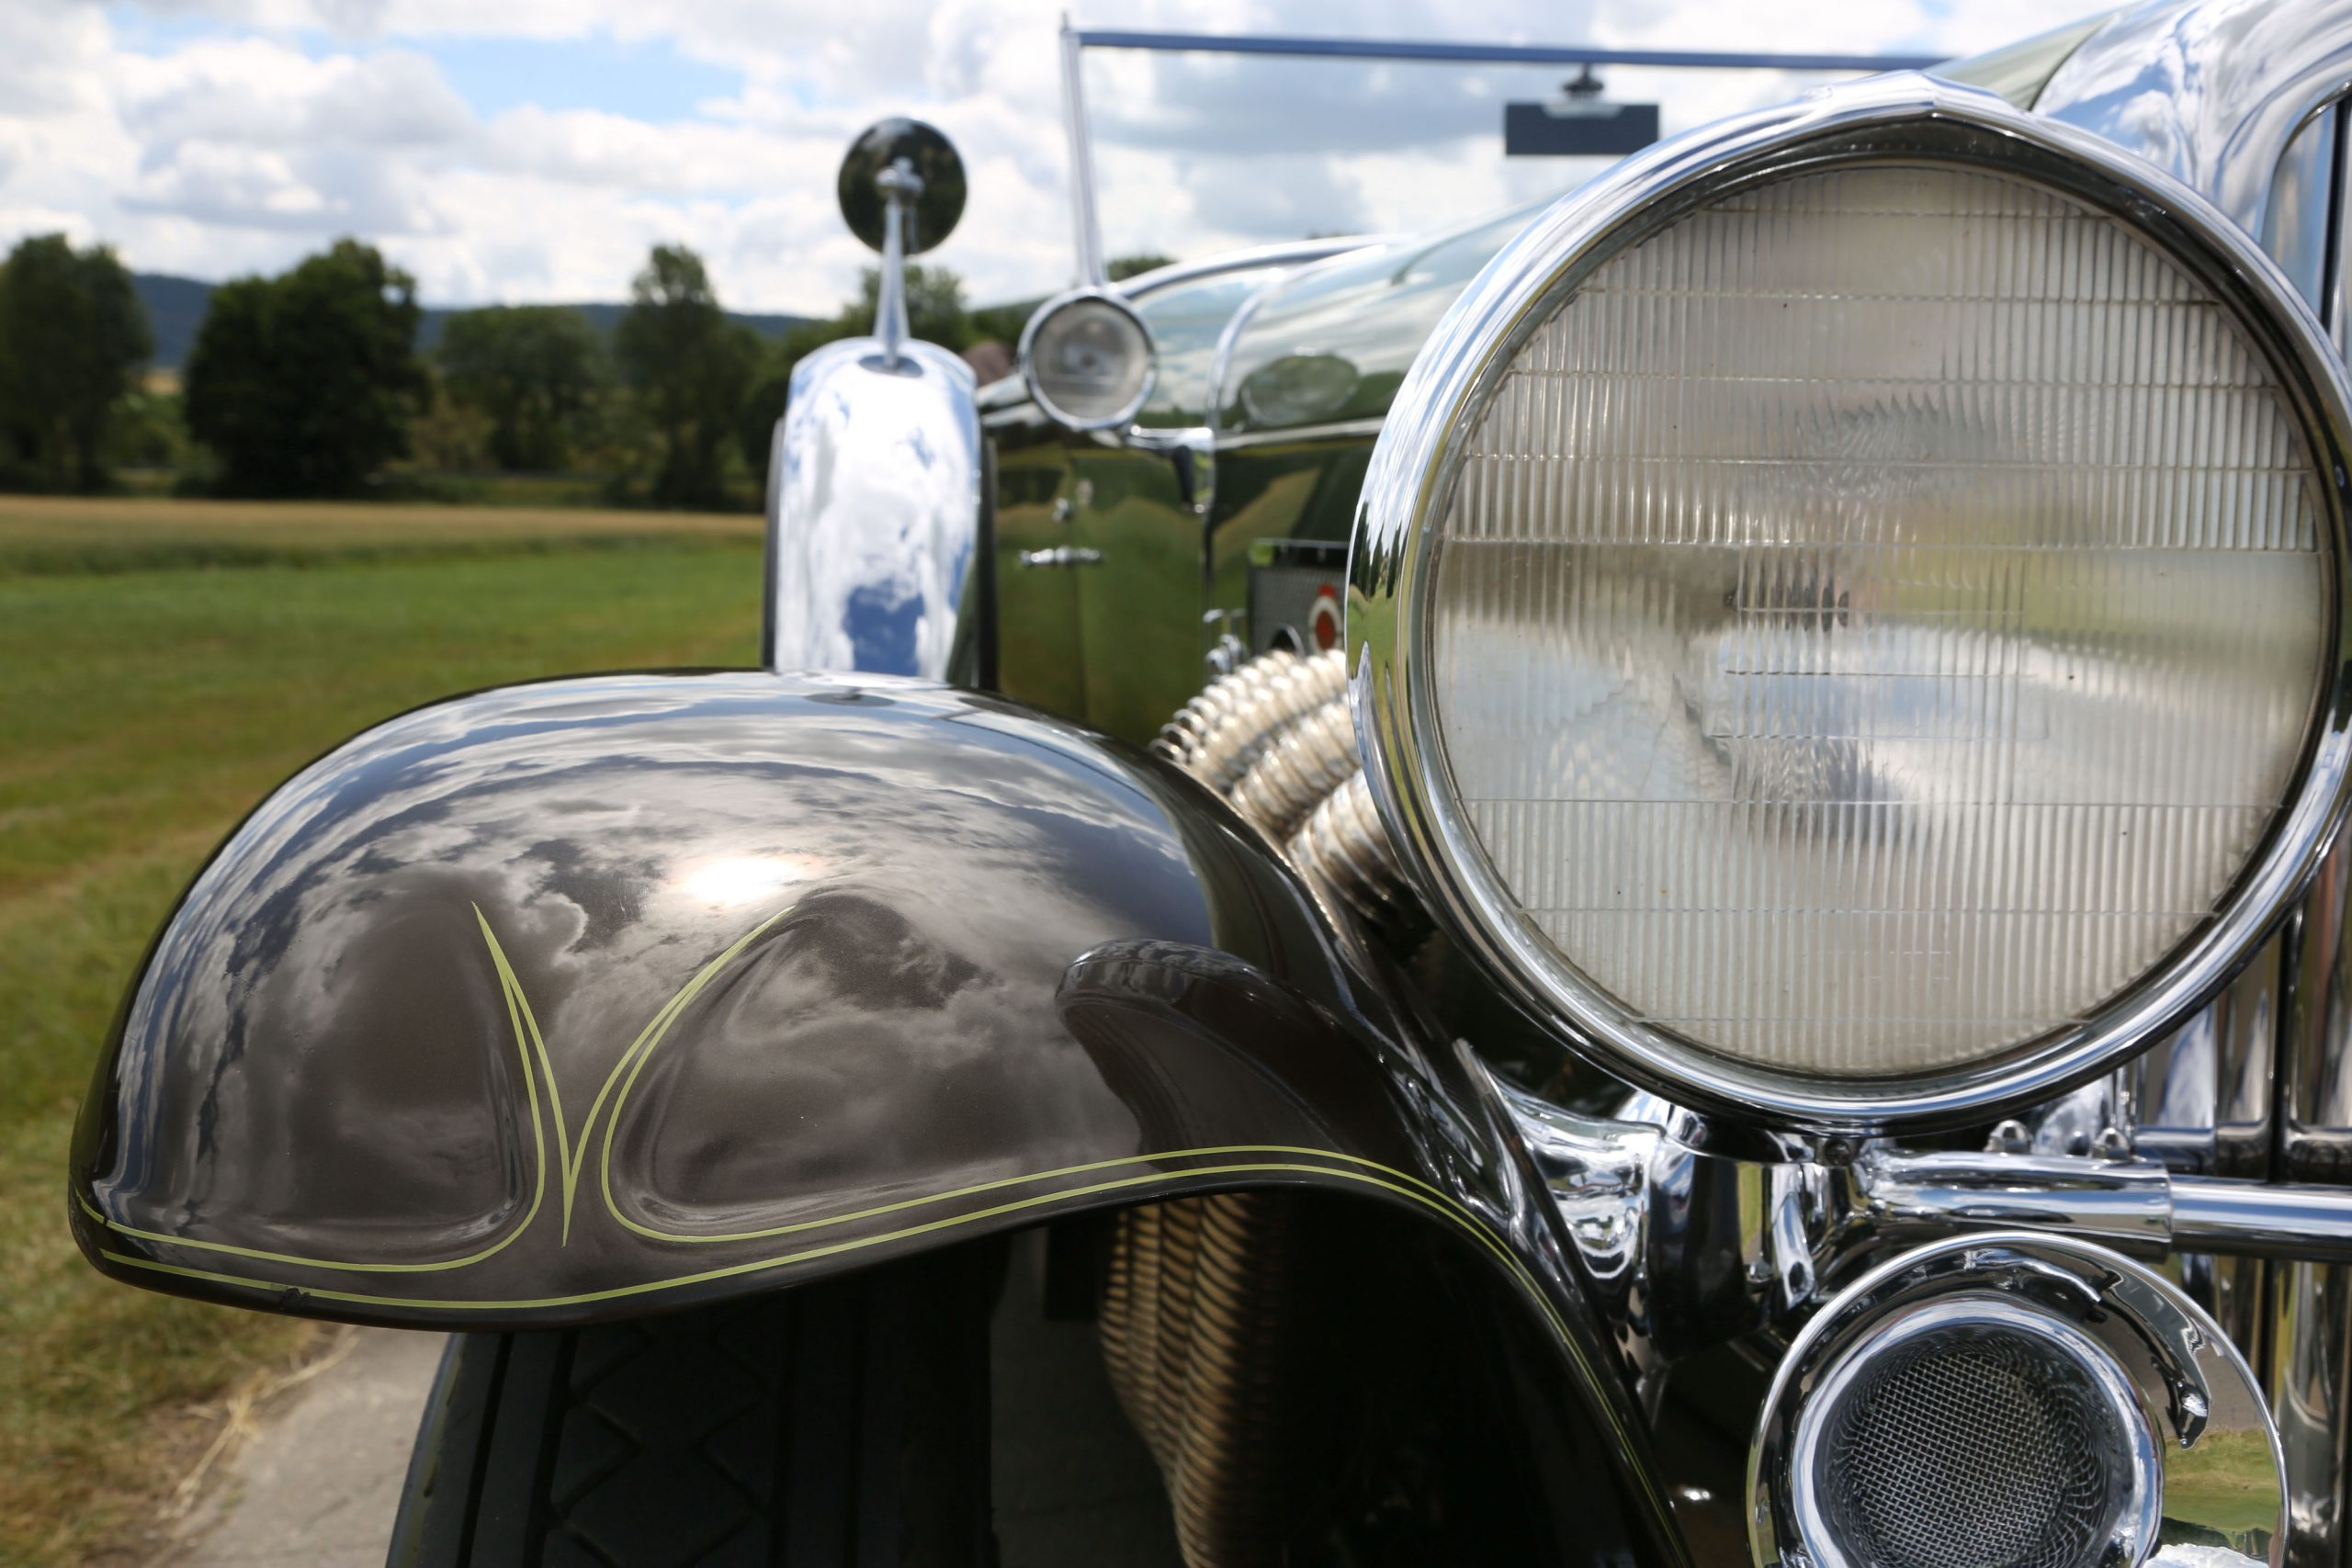 1929 Duesenberg Model SJ Convertible Sedan by Murphy pinstripe headlight